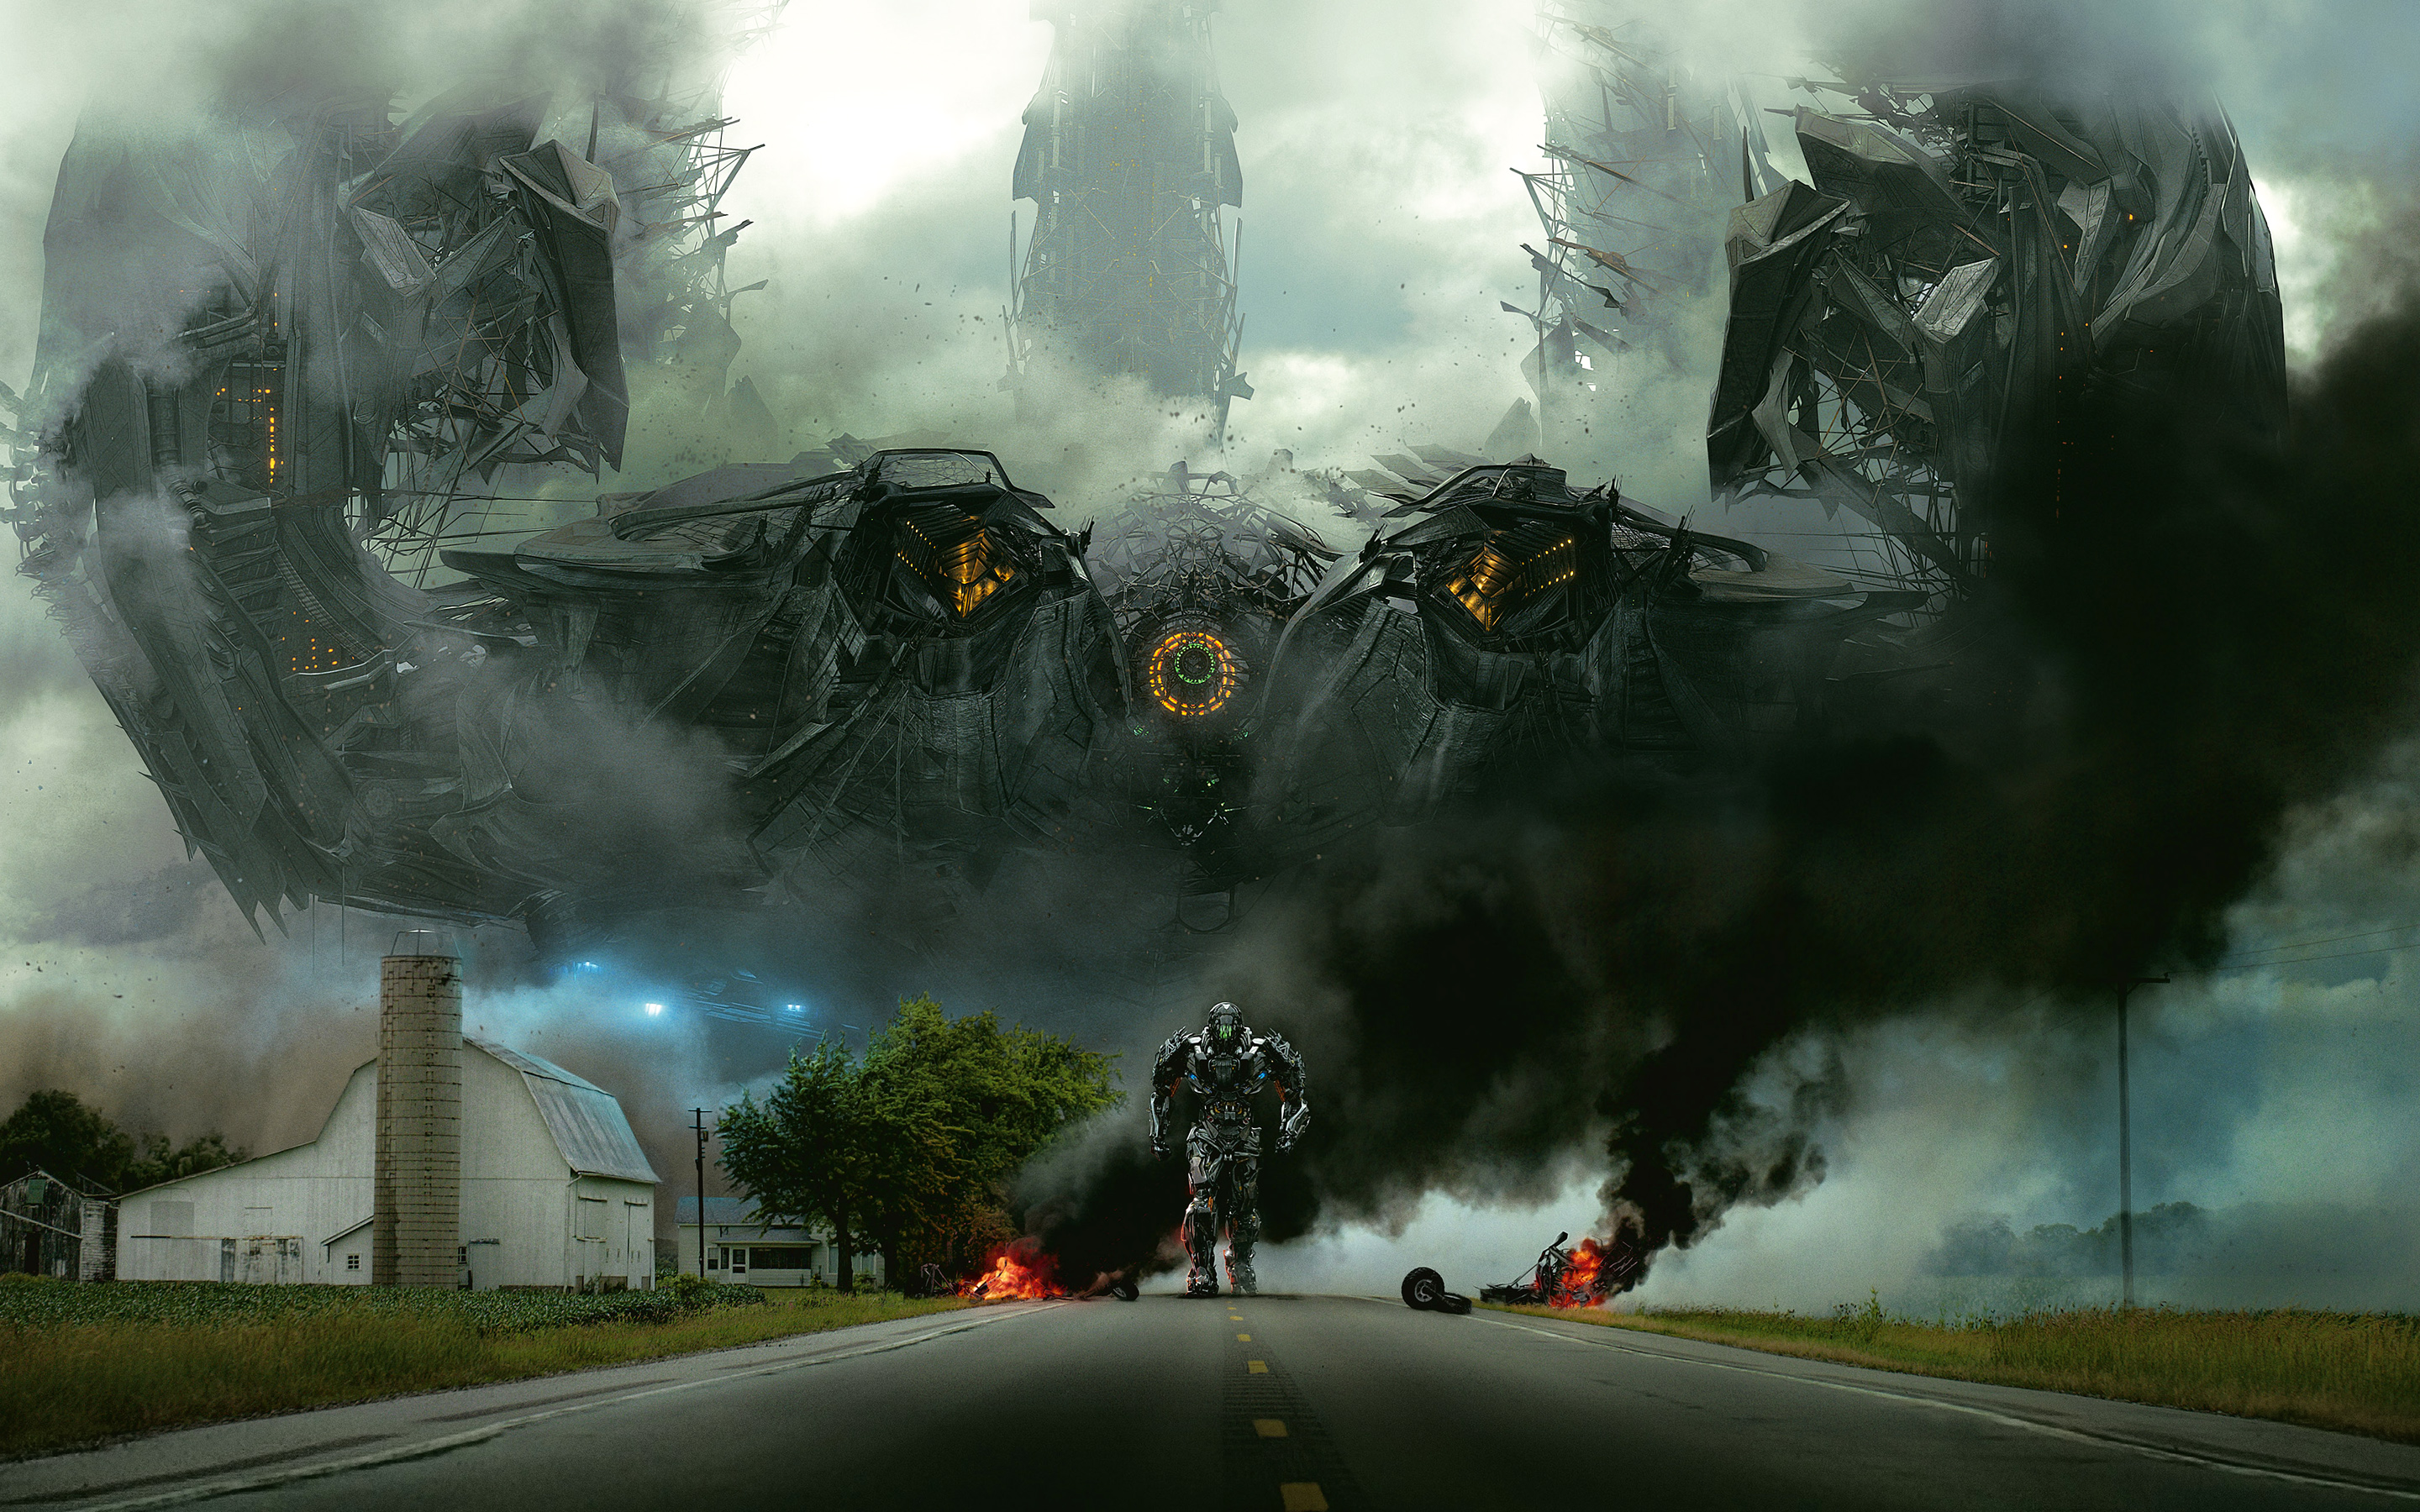 HD Wallpapers Lockdown in Transformers 4 Age of Extinction